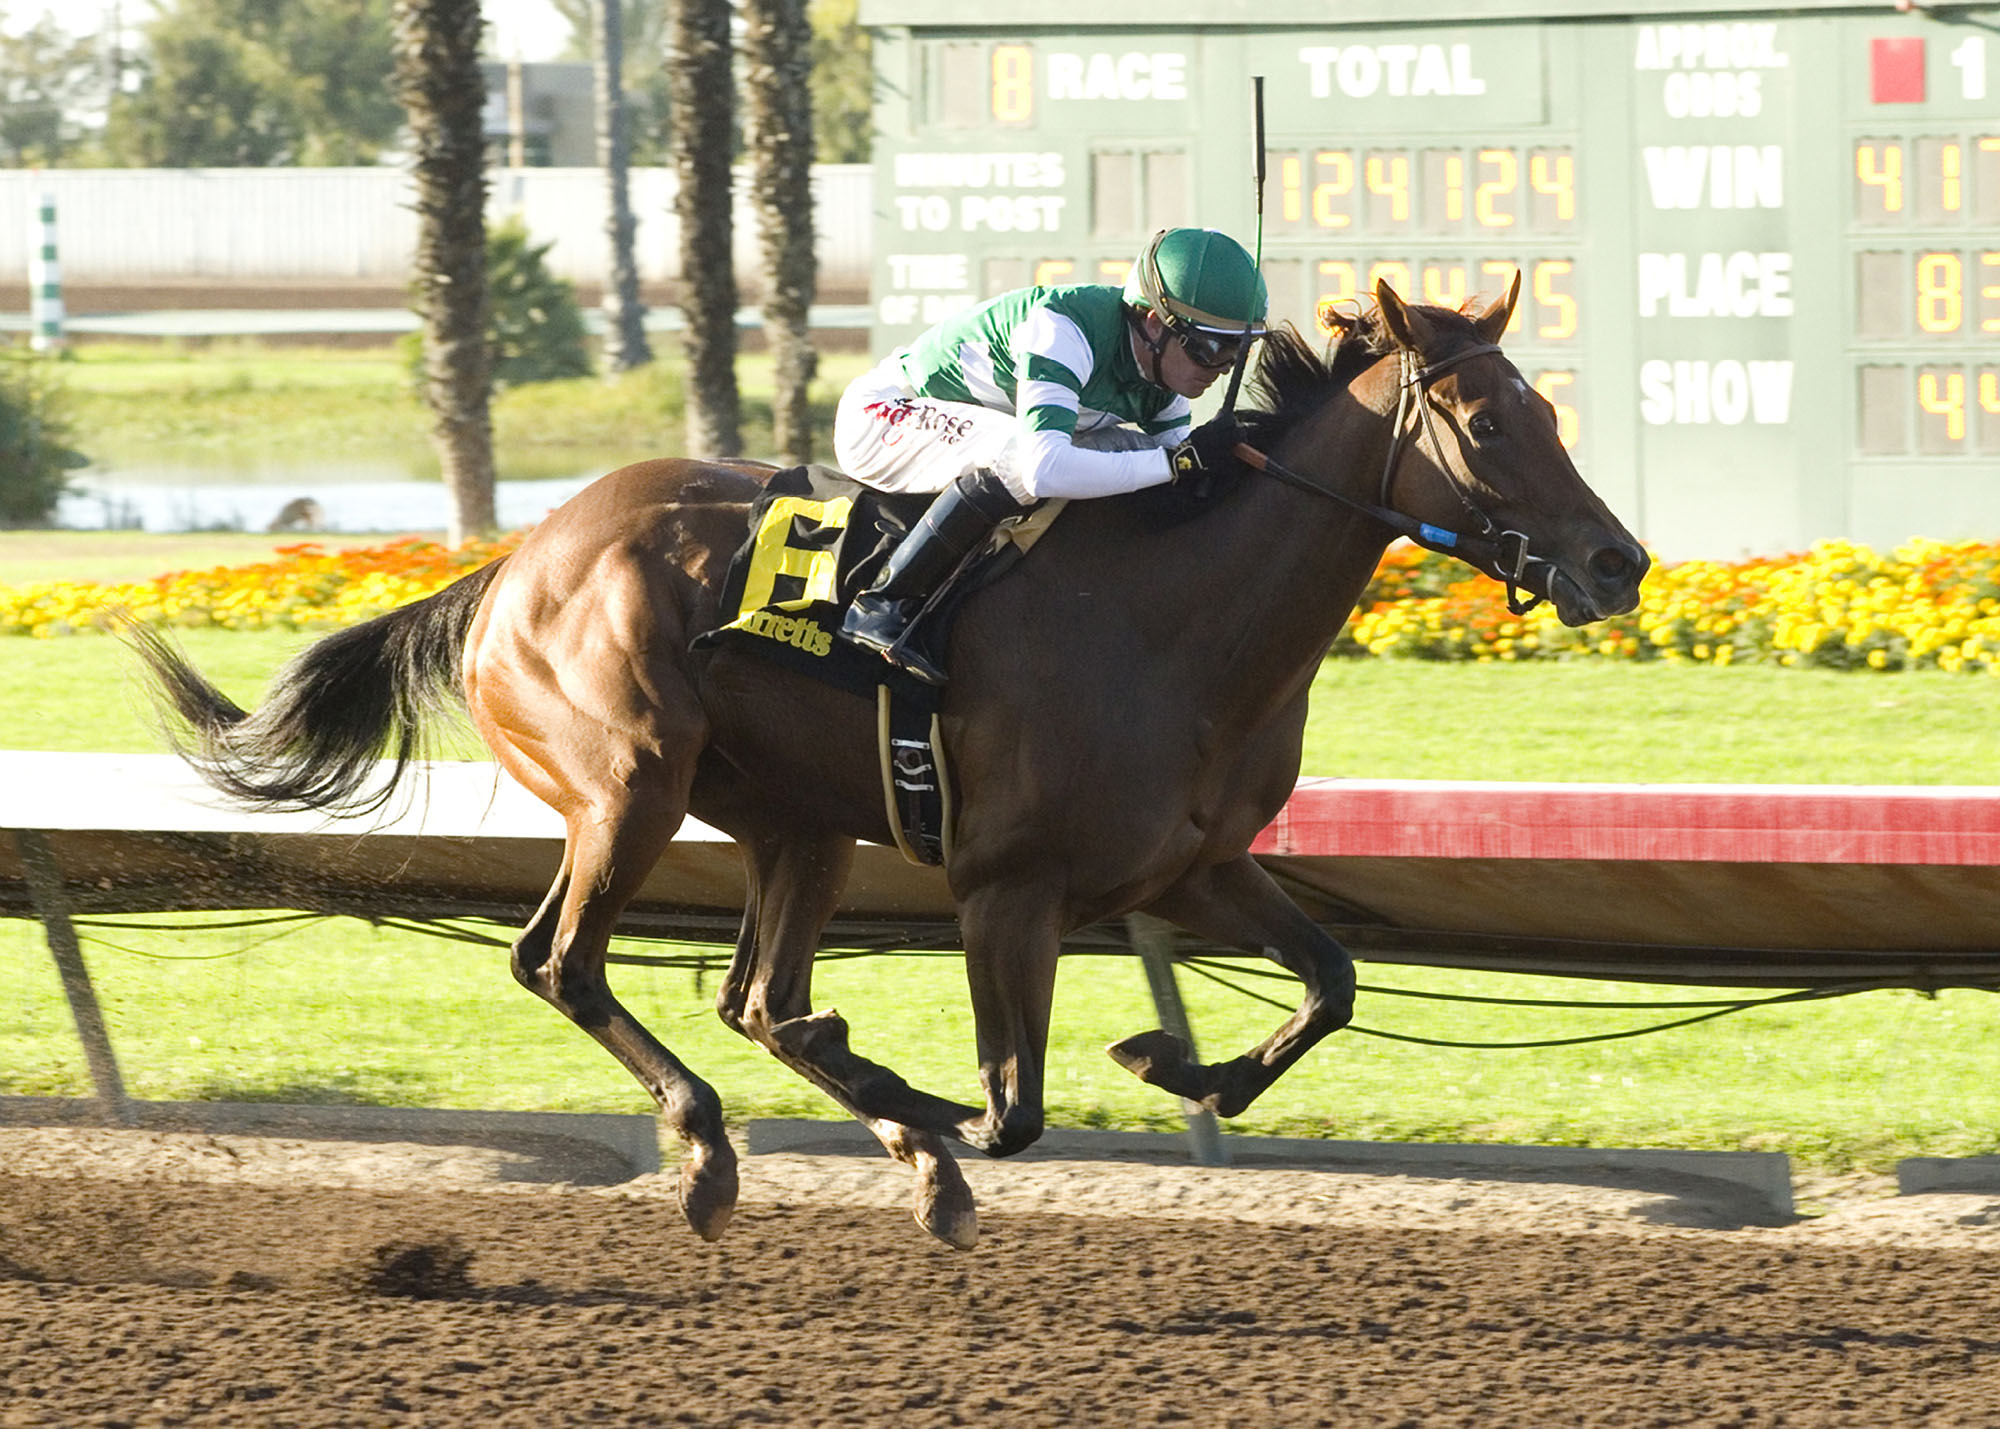 Hronis Racing and Sadler's Bitzka and jockey Tyler Baze win the $100,000 Barretts Debutante Saturday, Sept. 17, 2016 at Los Alamitos Race Course, in Cypress, Calif. (Benoit Photo via AP)